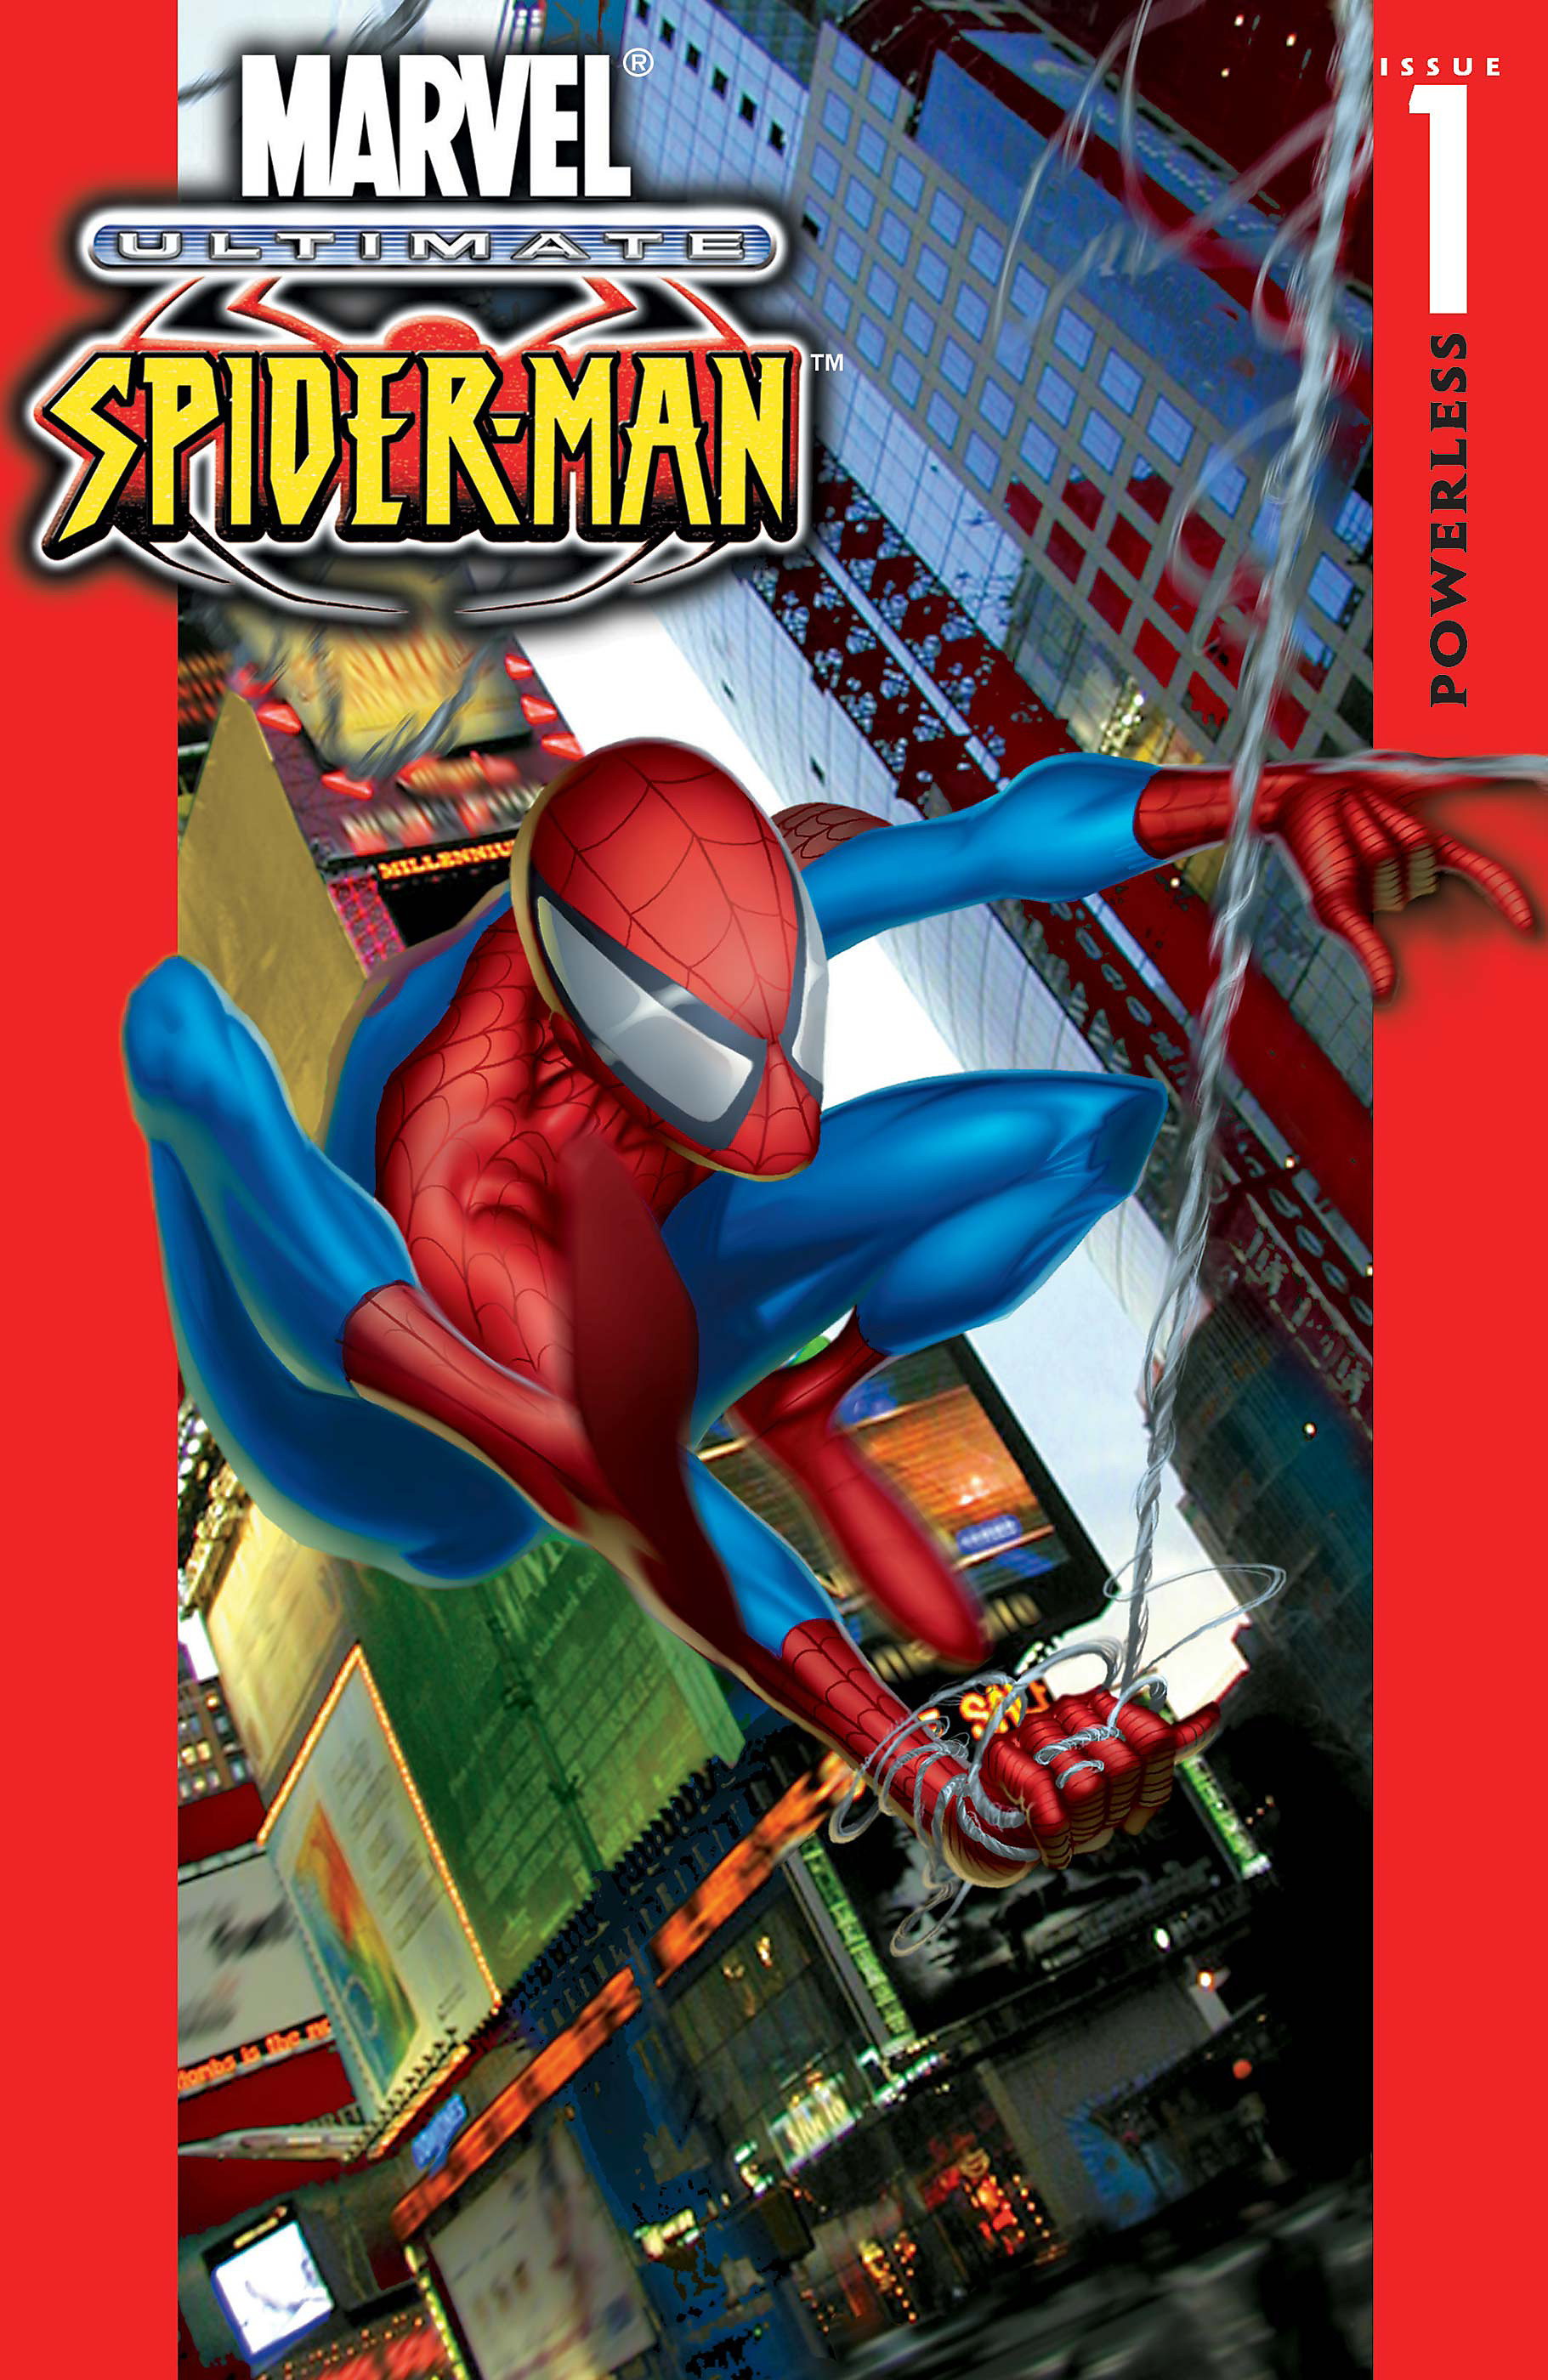 Spider-Man Comic - Ultimate Spider-Man #1 Cover